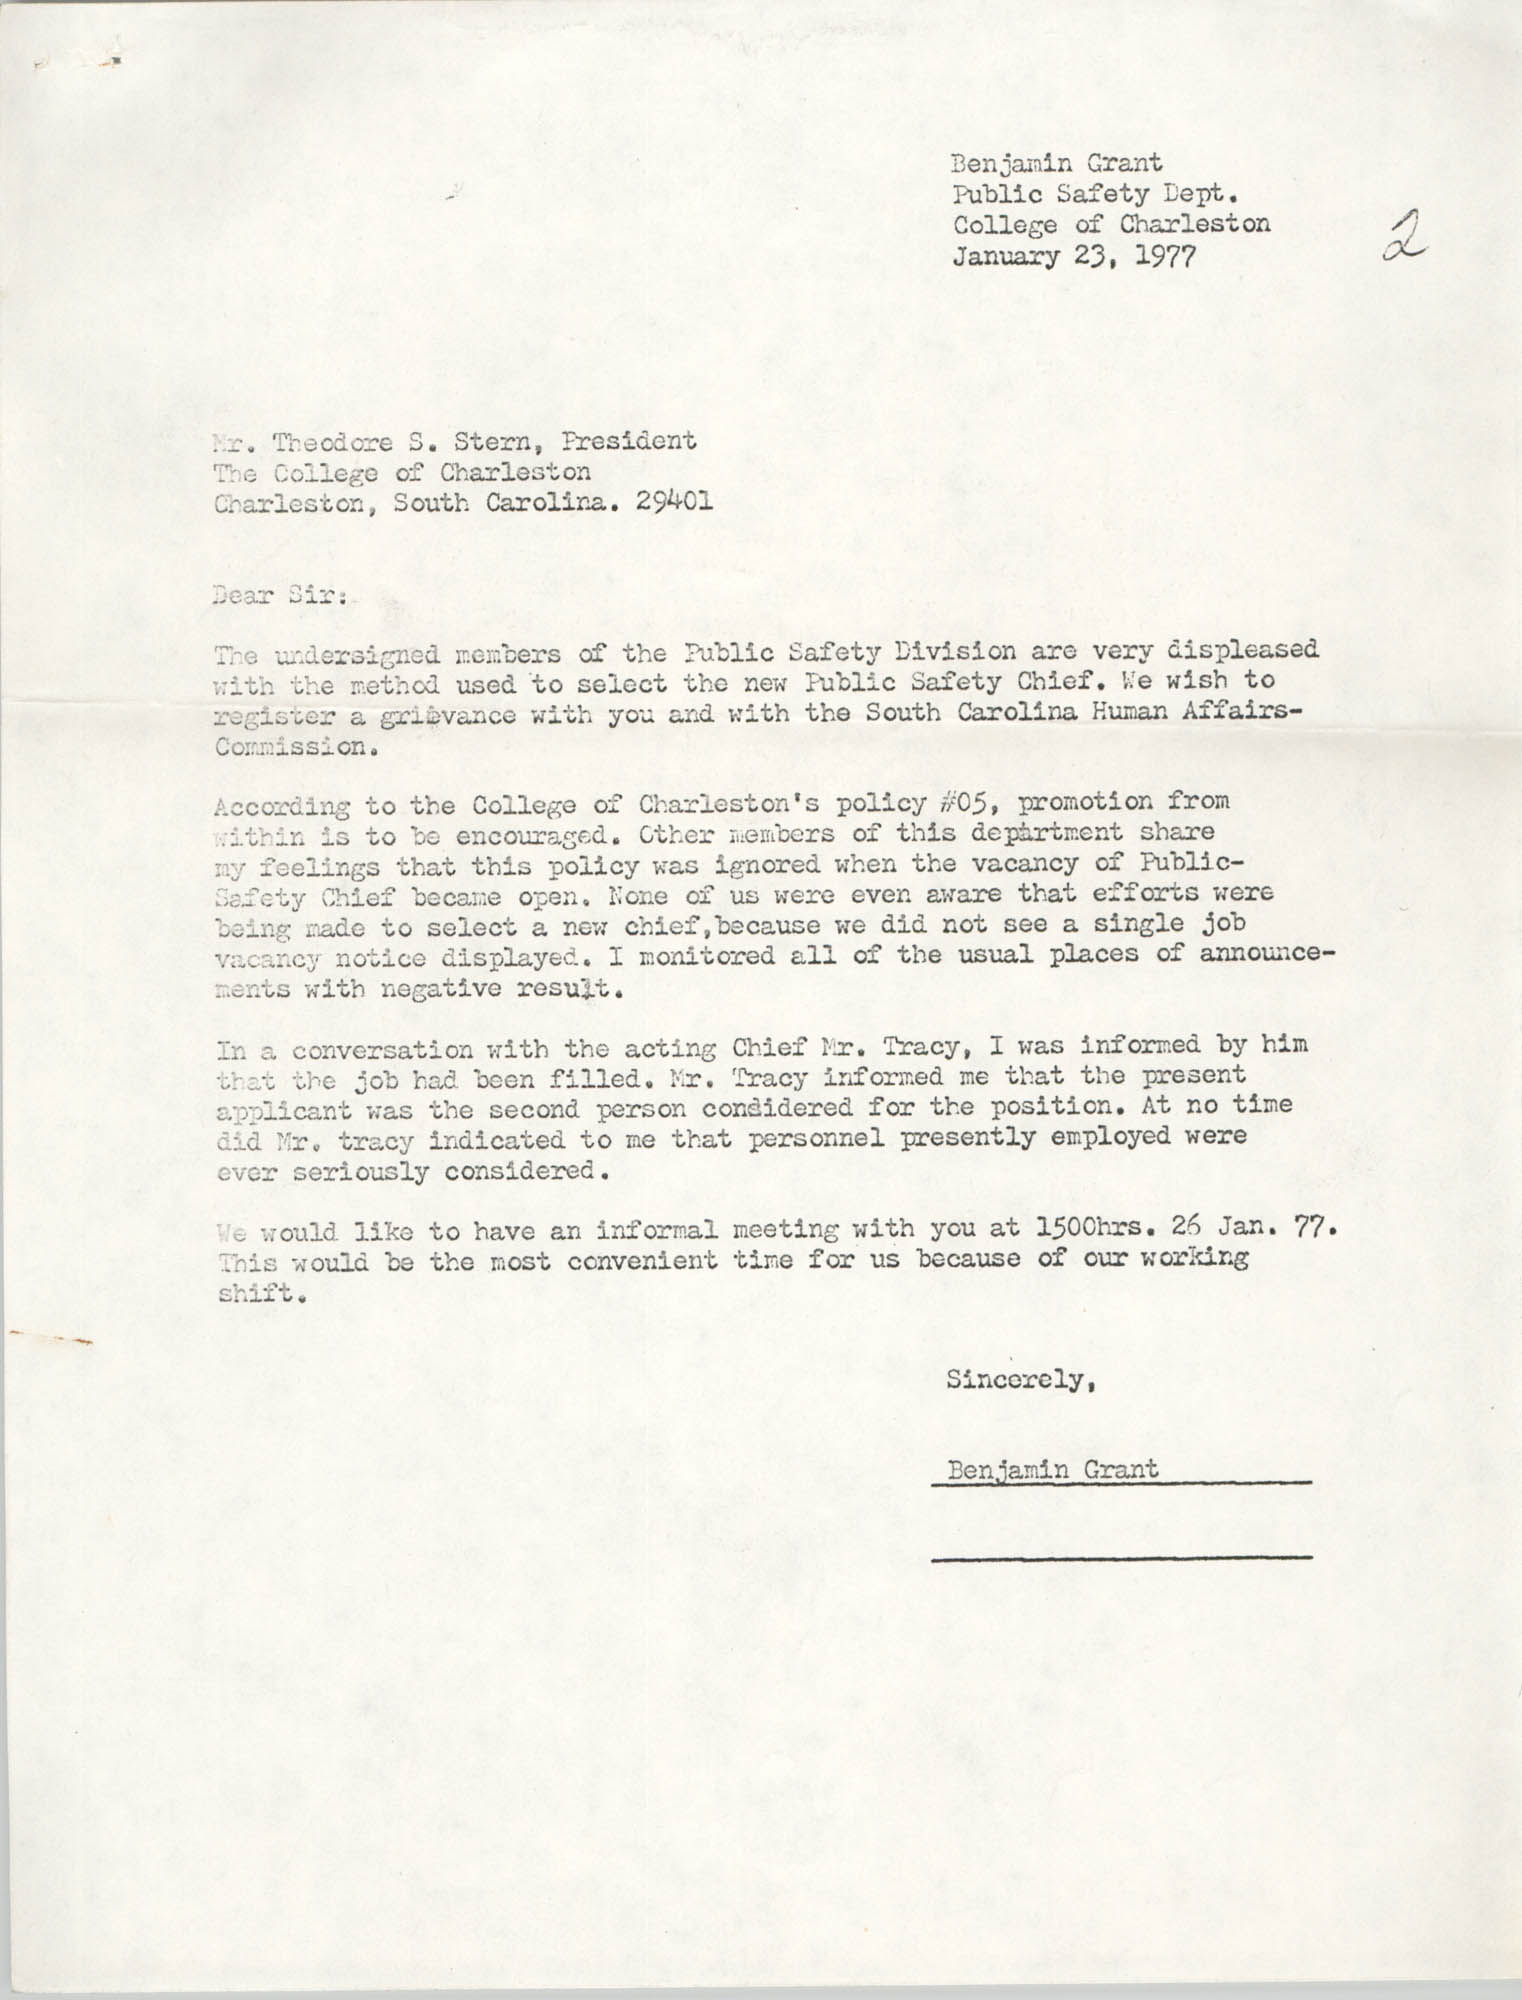 Letter from Benjamin Grant to Theodore S. Stern, January 23, 1977